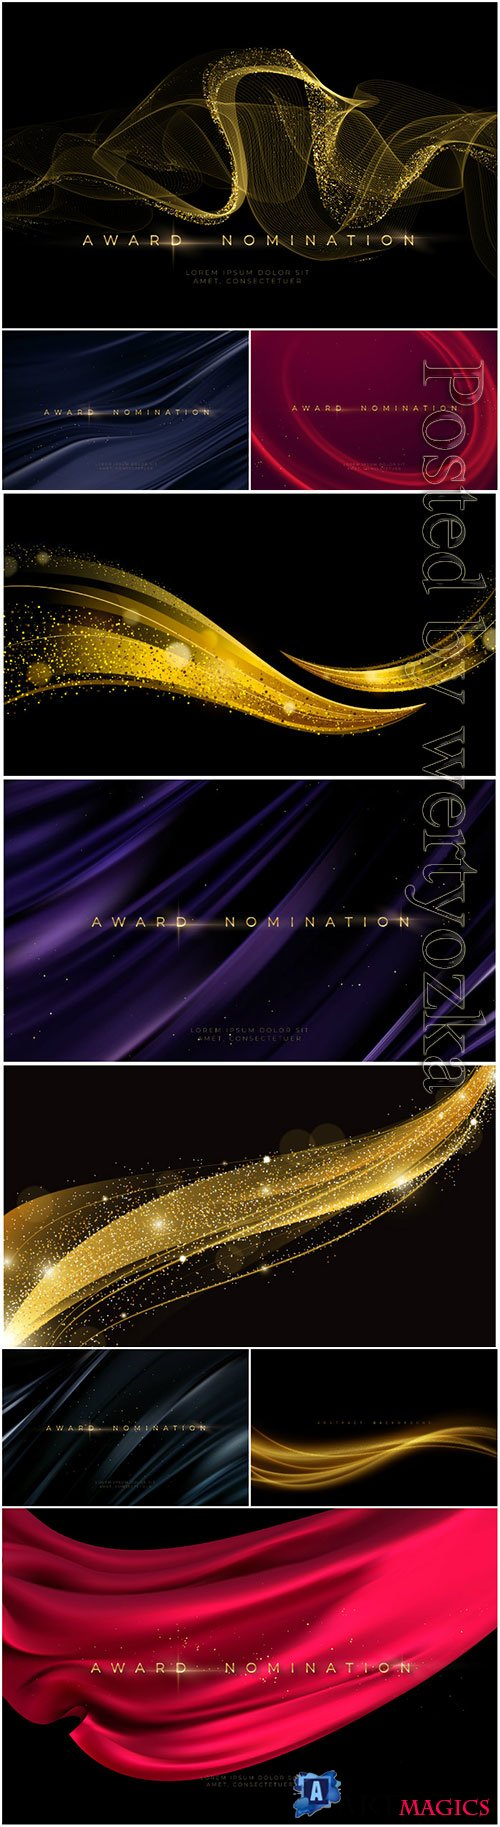 Awards ceremony luxurious black vector background